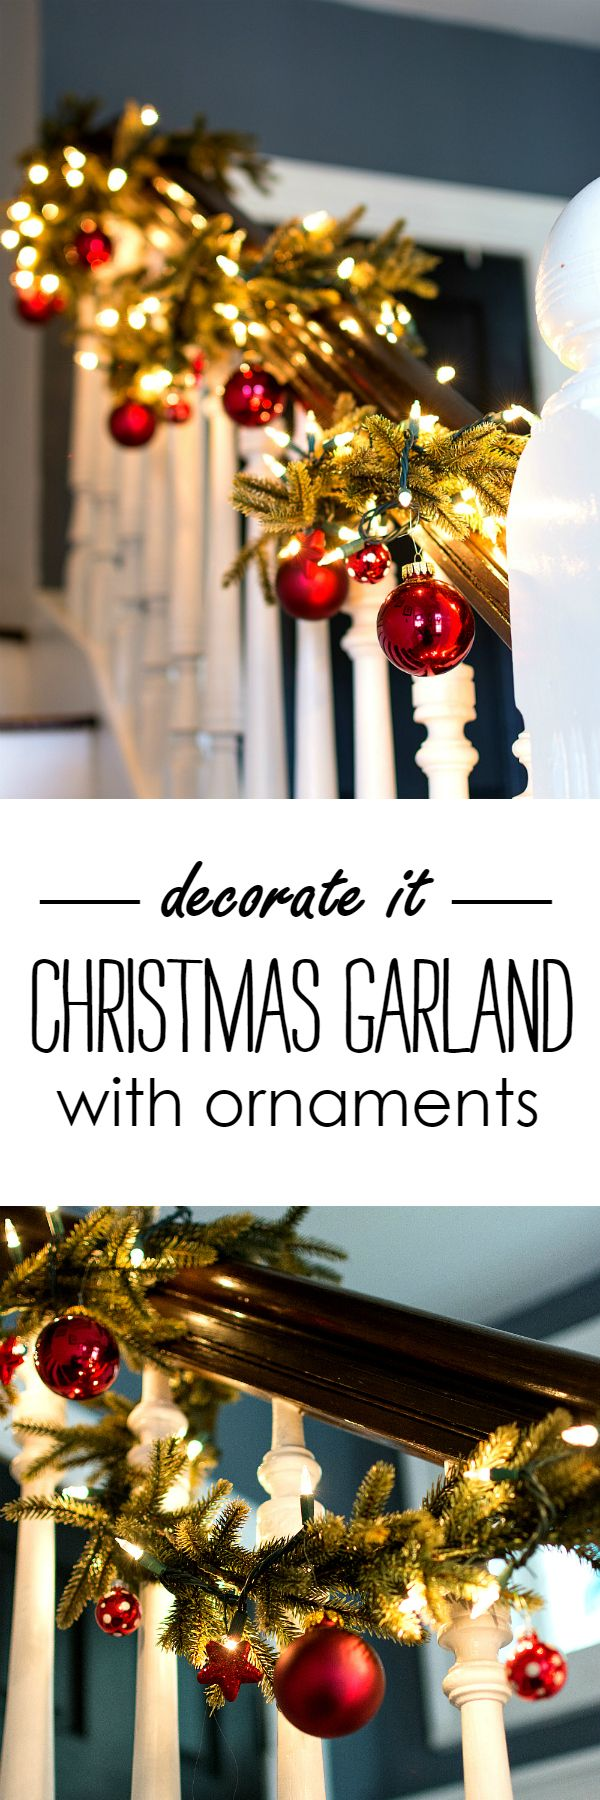 Christmas Decorating Ideas with Garland